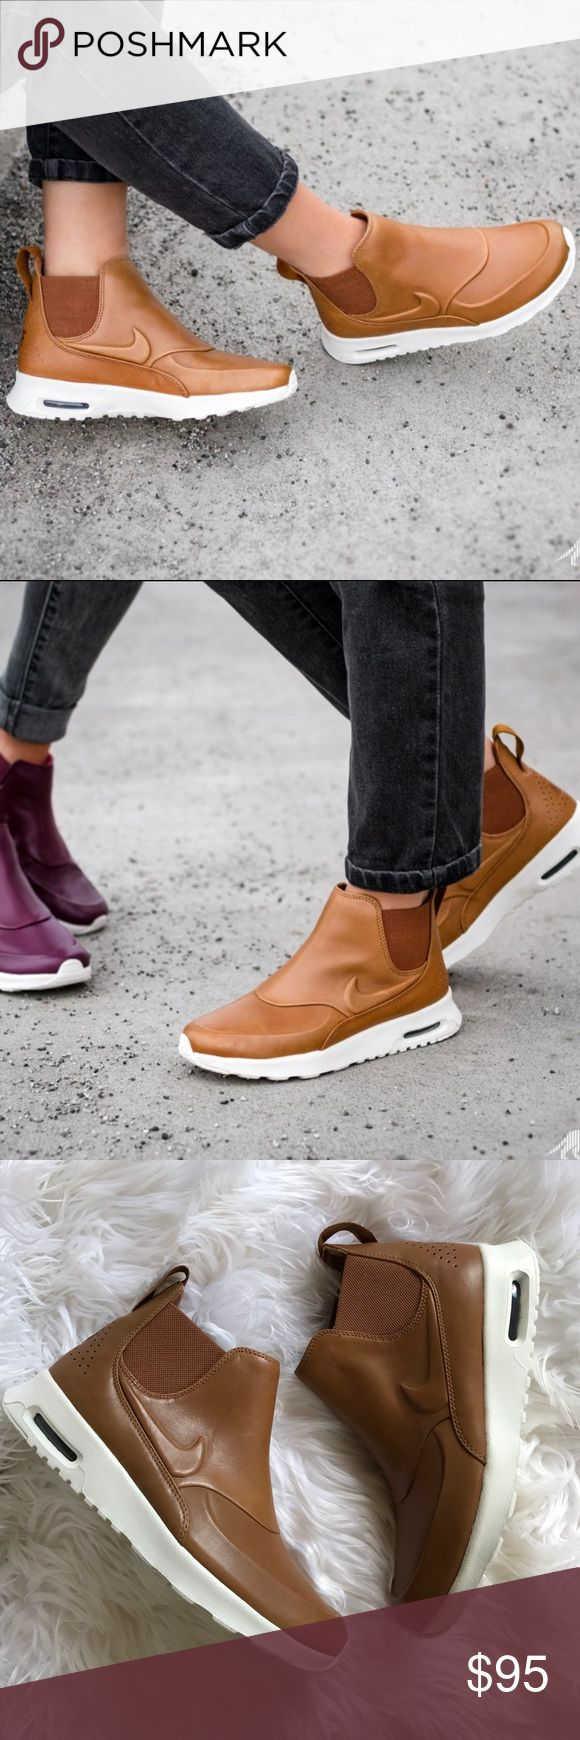 nike air max thea mid femme,bottines Nike Wmns Air Max Thea